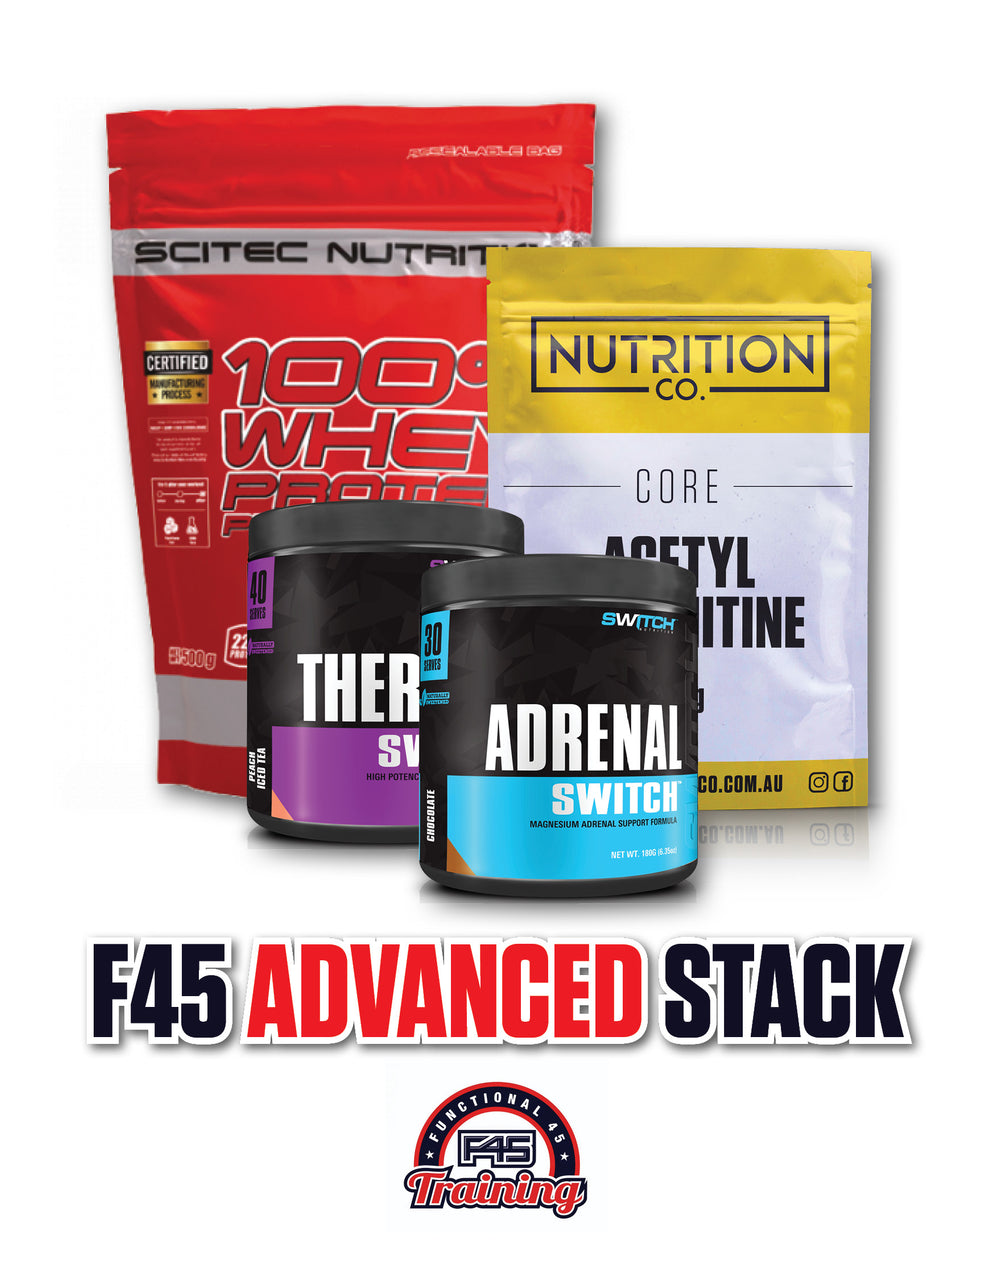 F45 ADVANCED PACK, Nutrition Co Australia - Nutrition Co Australia